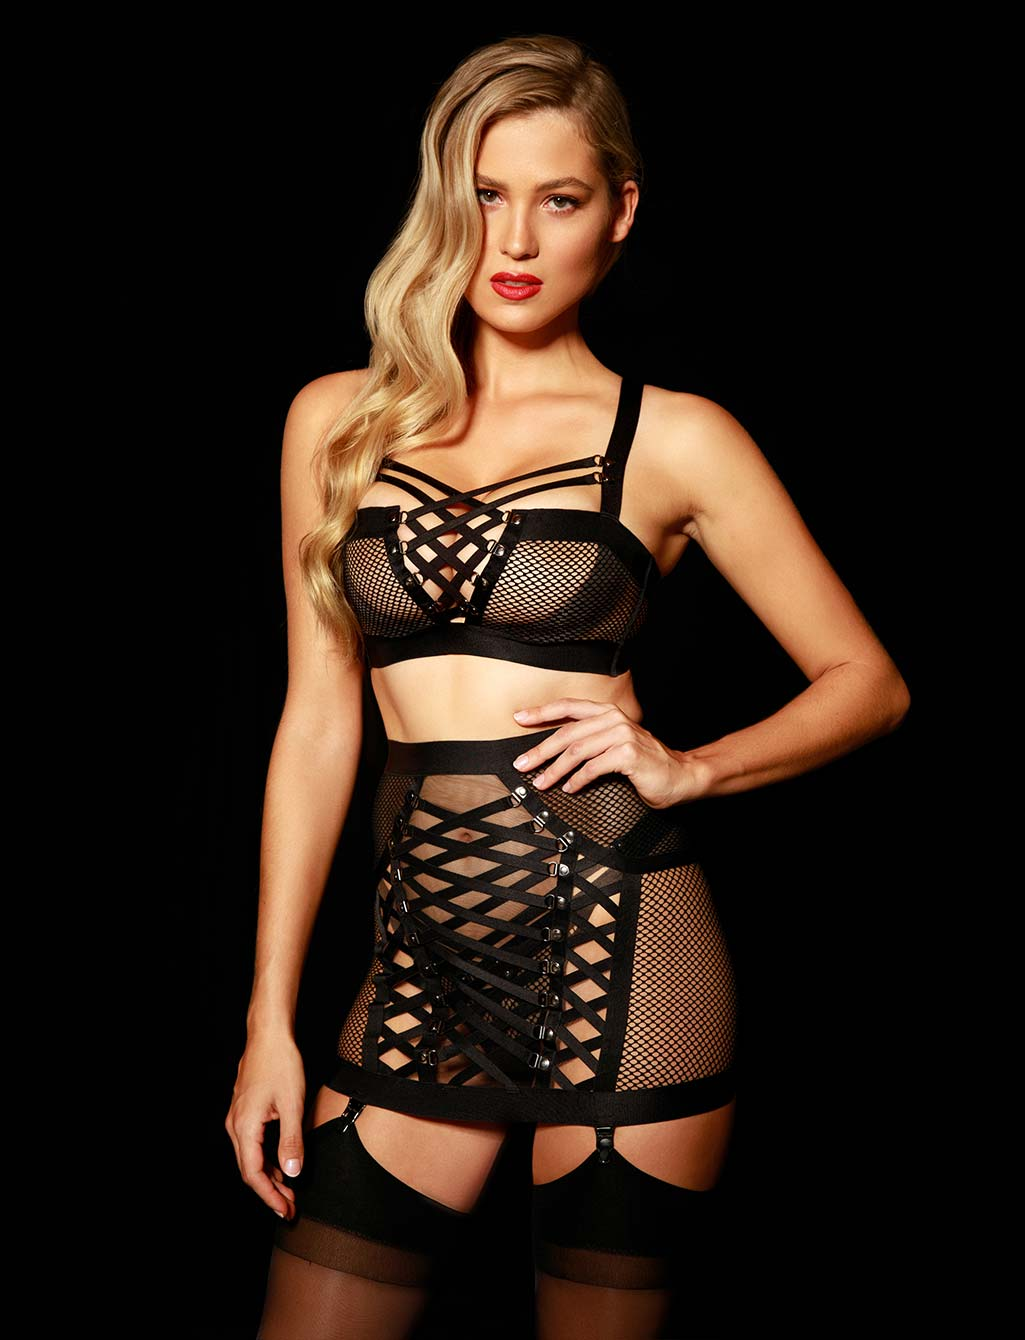 Courtney Black Garter Belt | Shop Sexy Lingerie Honey Birdette